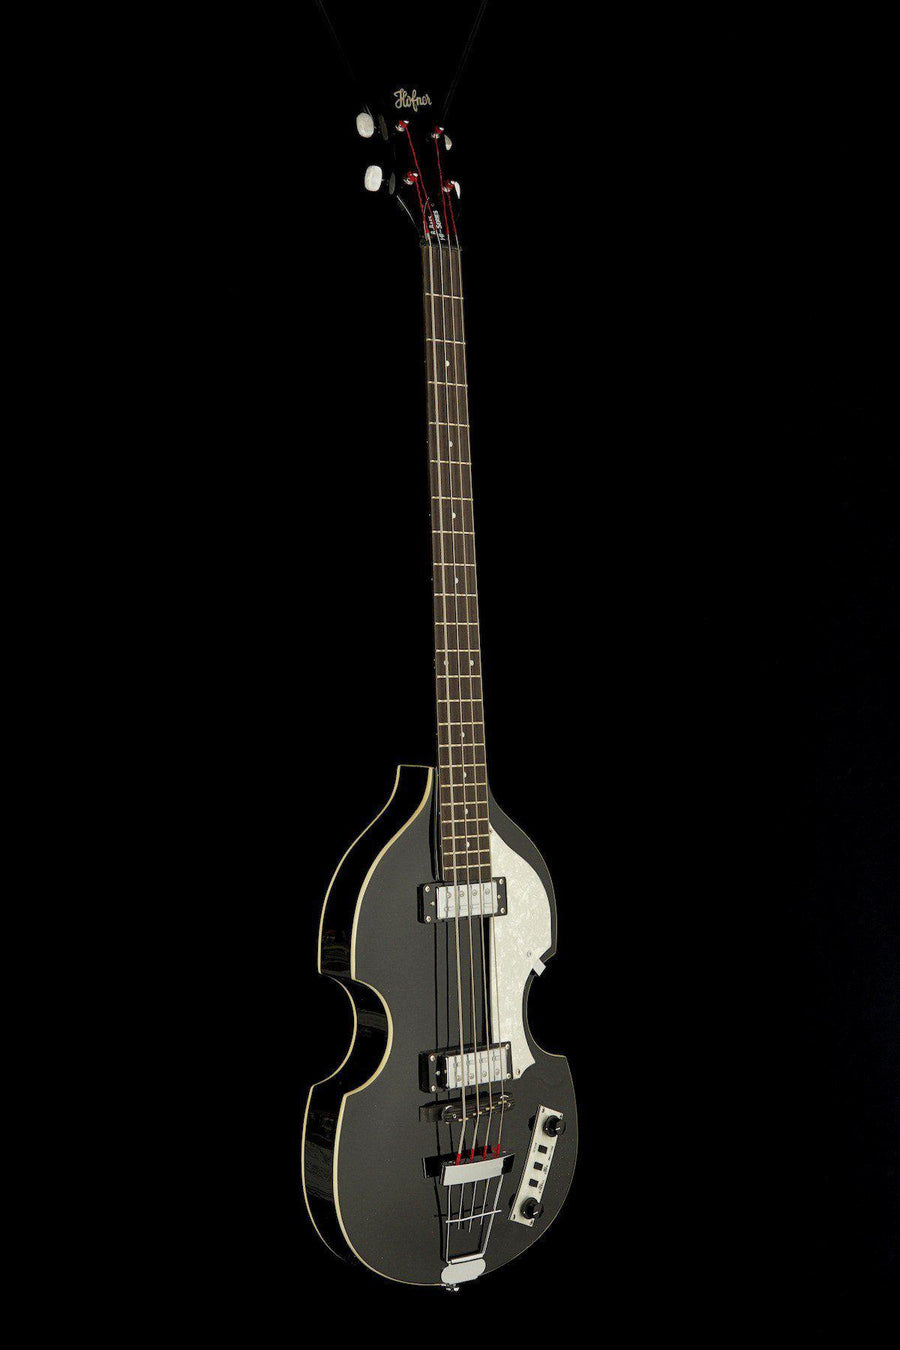 Hofner Ignition Series 500/1 Violin Bass - Bass Centre